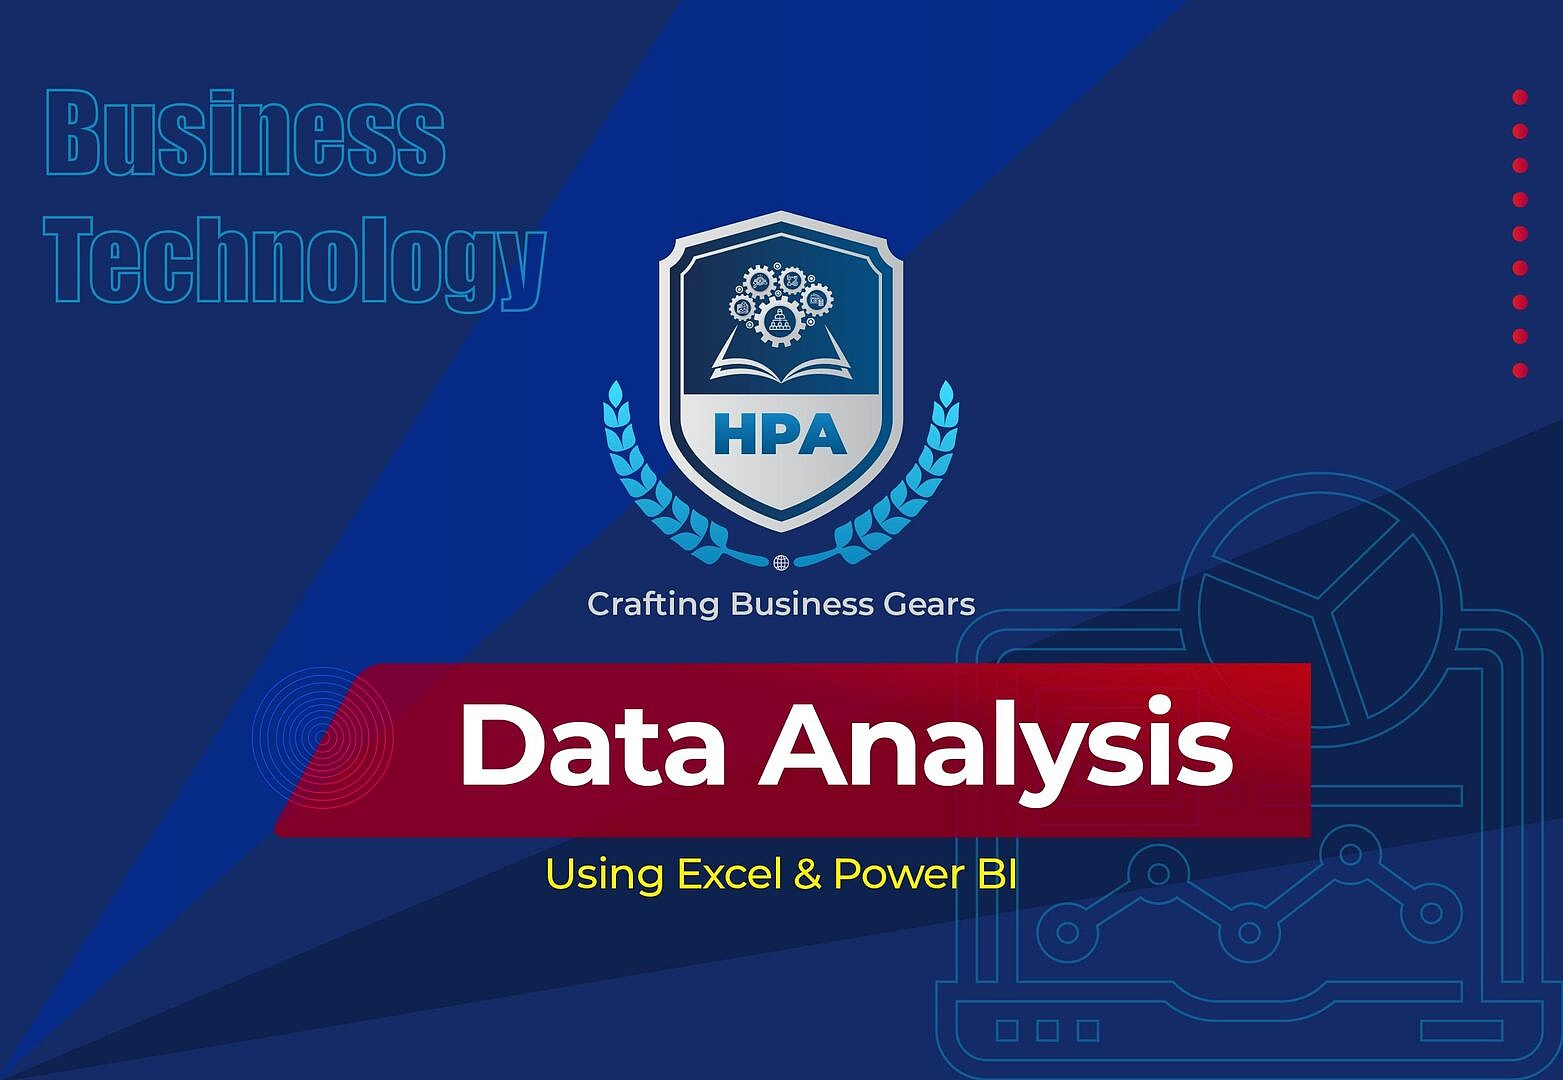 Data Analysis using power Bi and Excel